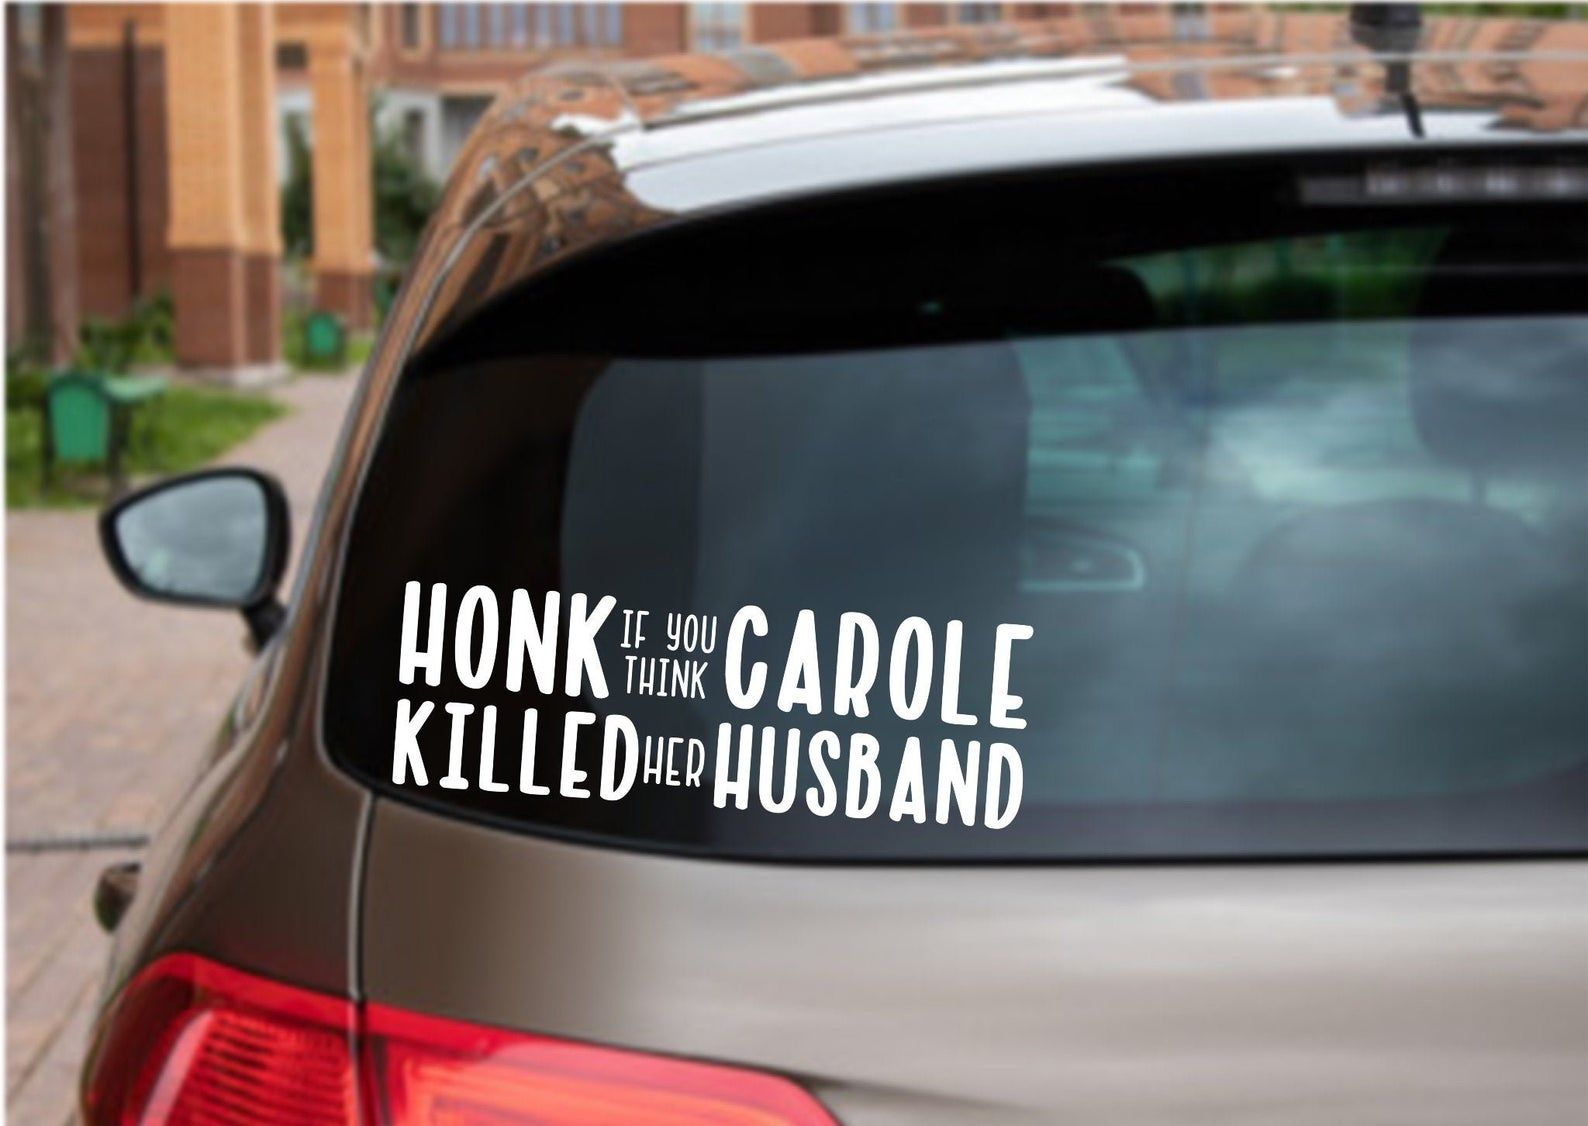 This Item Is Unavailable Etsy Funny Car Decals Car Humor Carole [ 1126 x 1588 Pixel ]